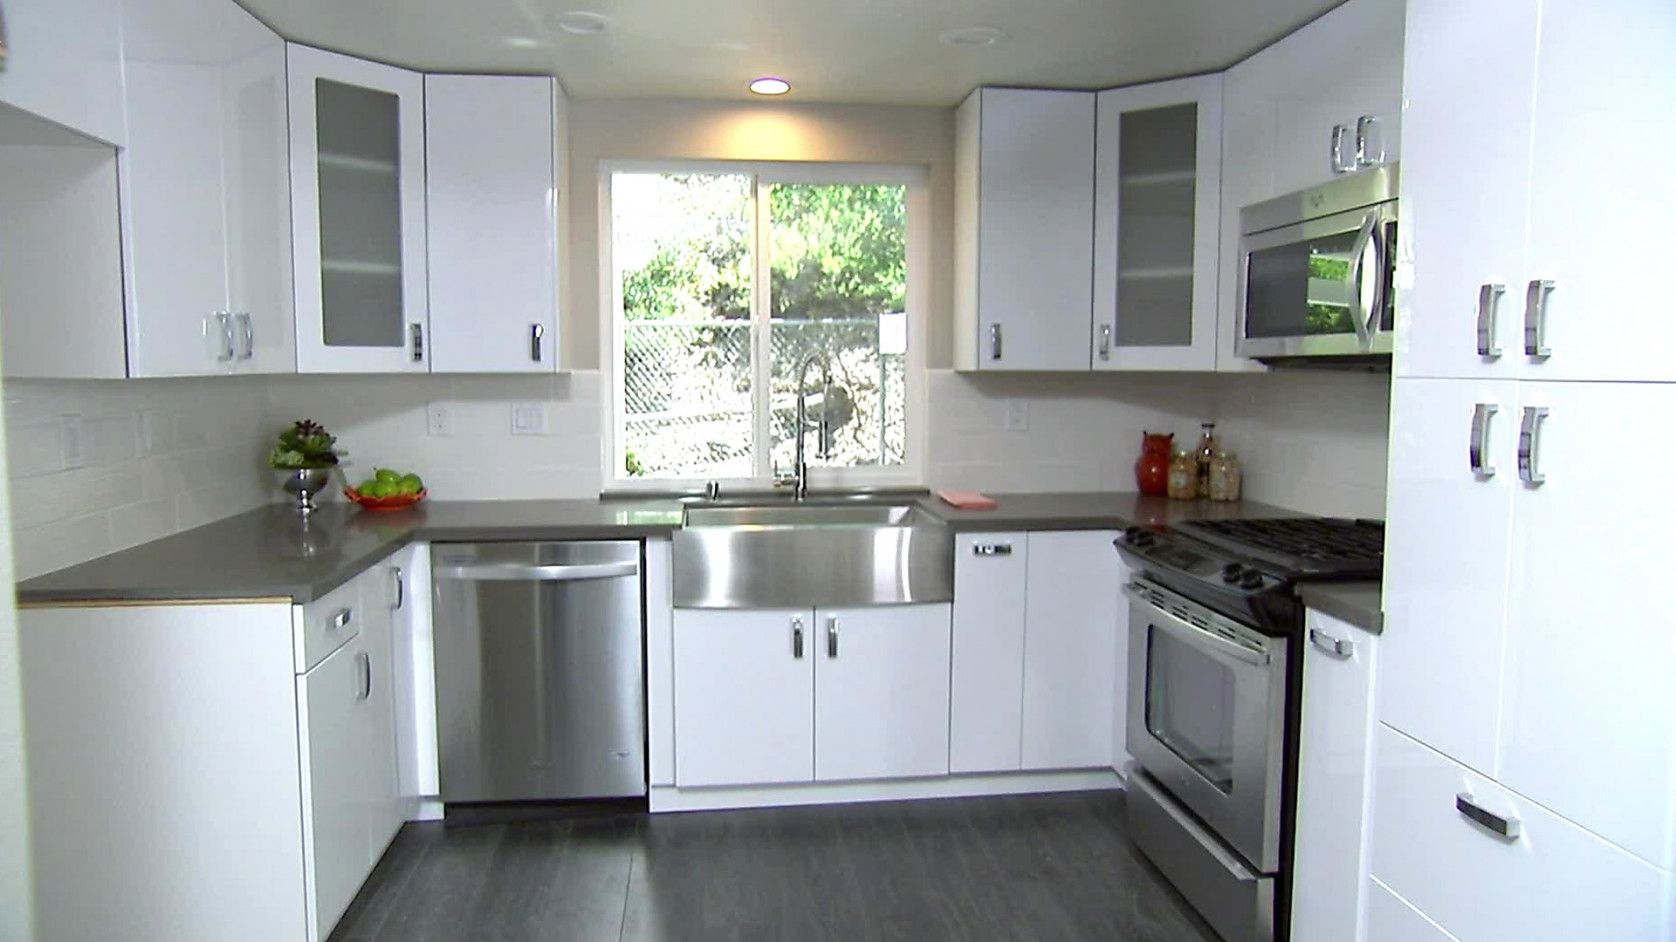 70+ Kitchen Cabinets Update Ideas On A Budget   Apartment ...